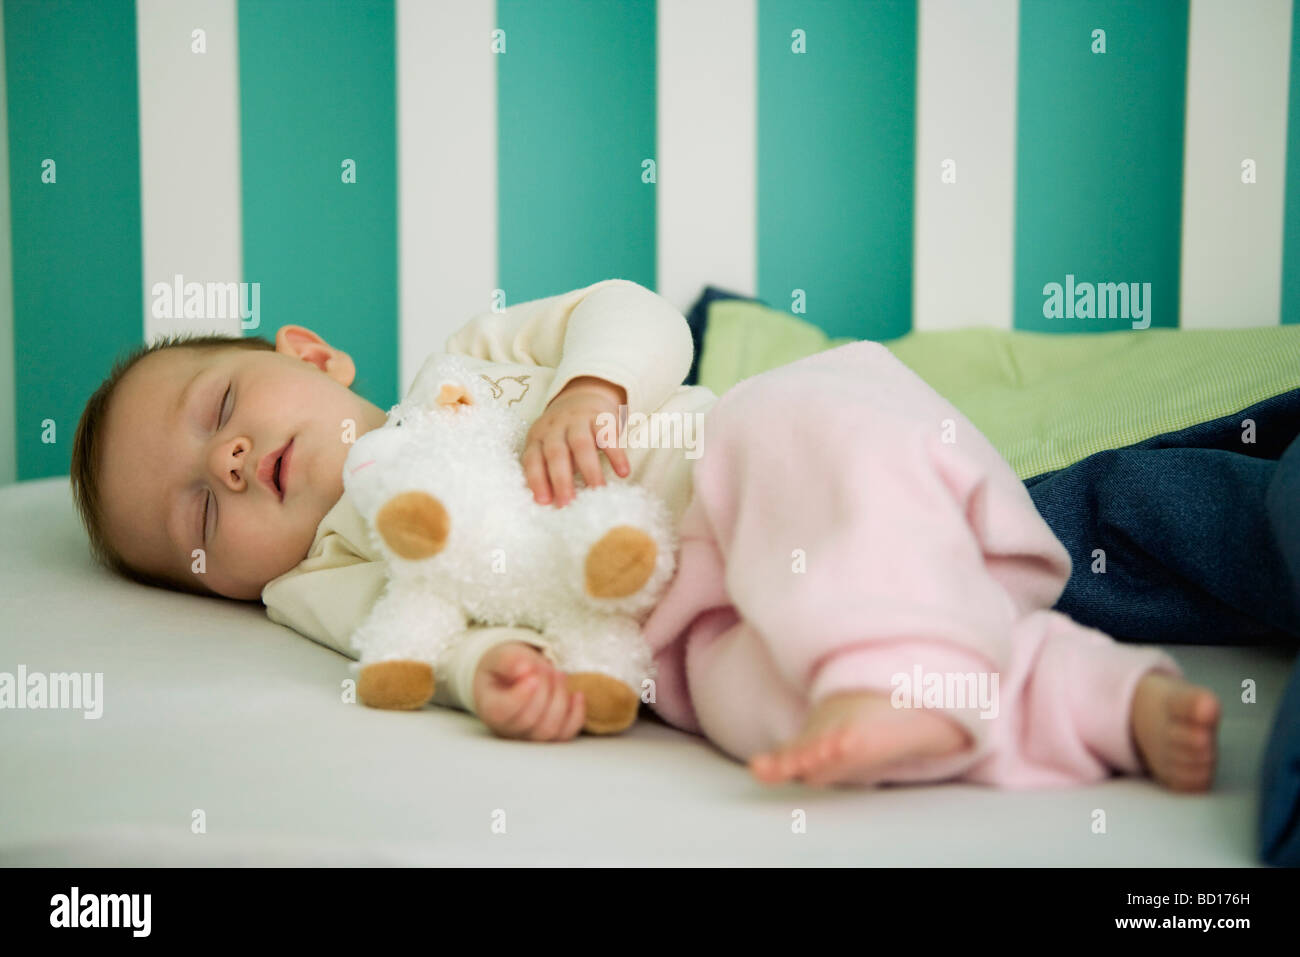 Baby Sleeping In Crib Holding Stuffed Toy Stock Photo